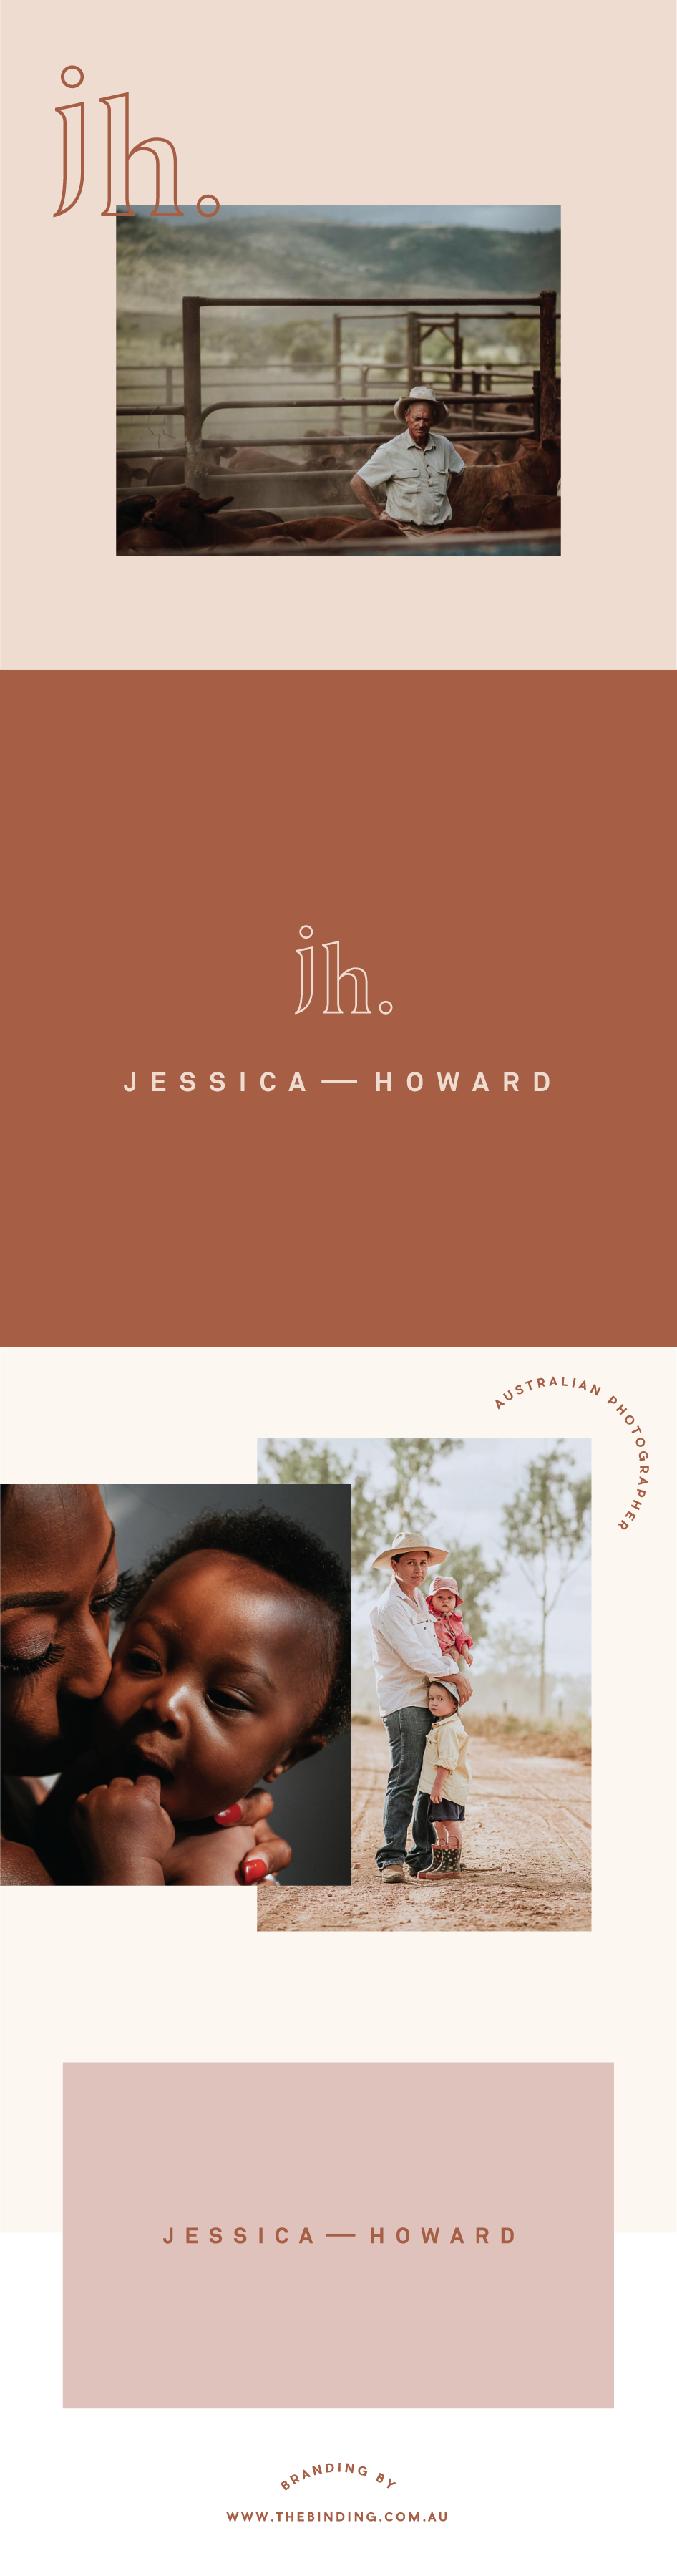 Jessica Howard Photographer Branding